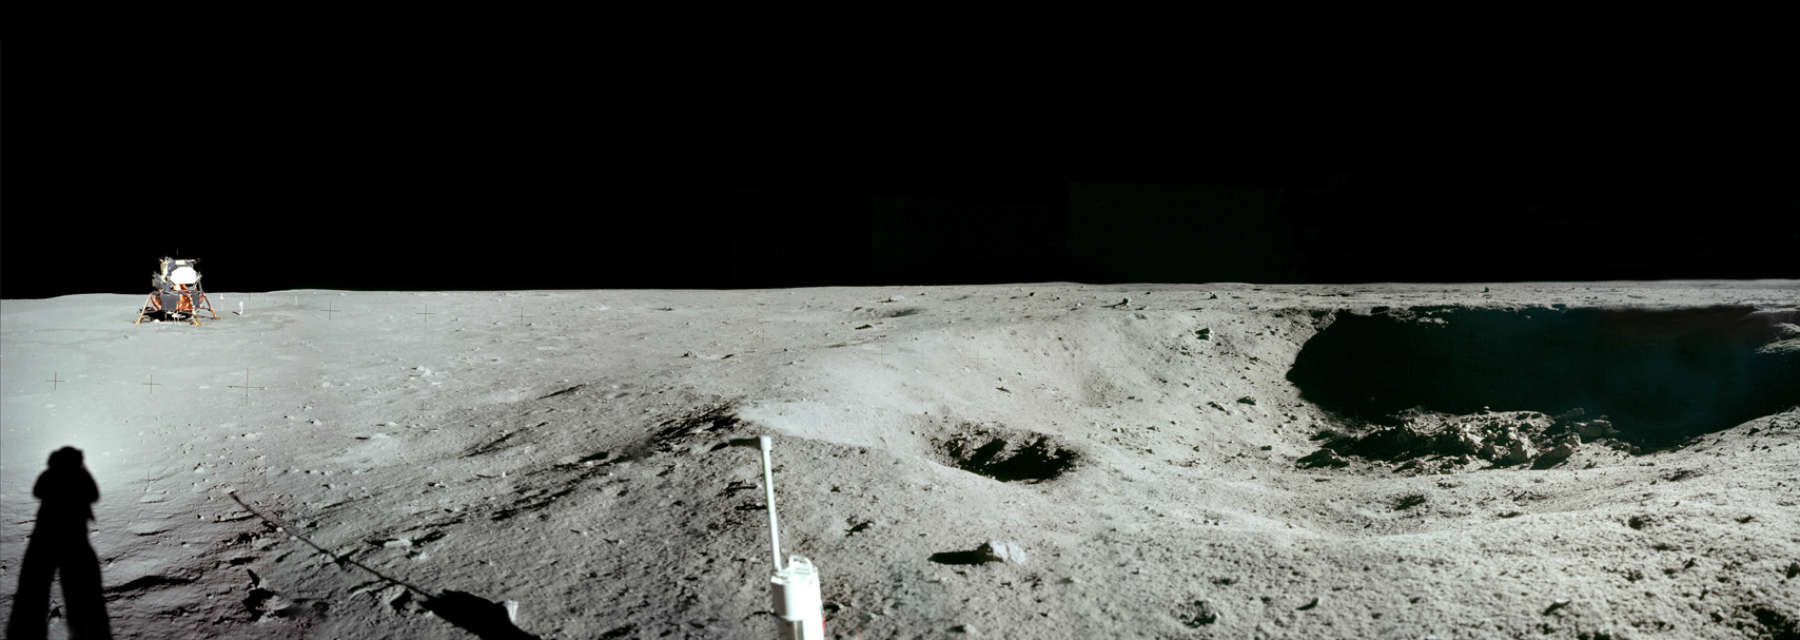 Apollo 11 East Crater with Eagle Lander in background. Credit: NASA